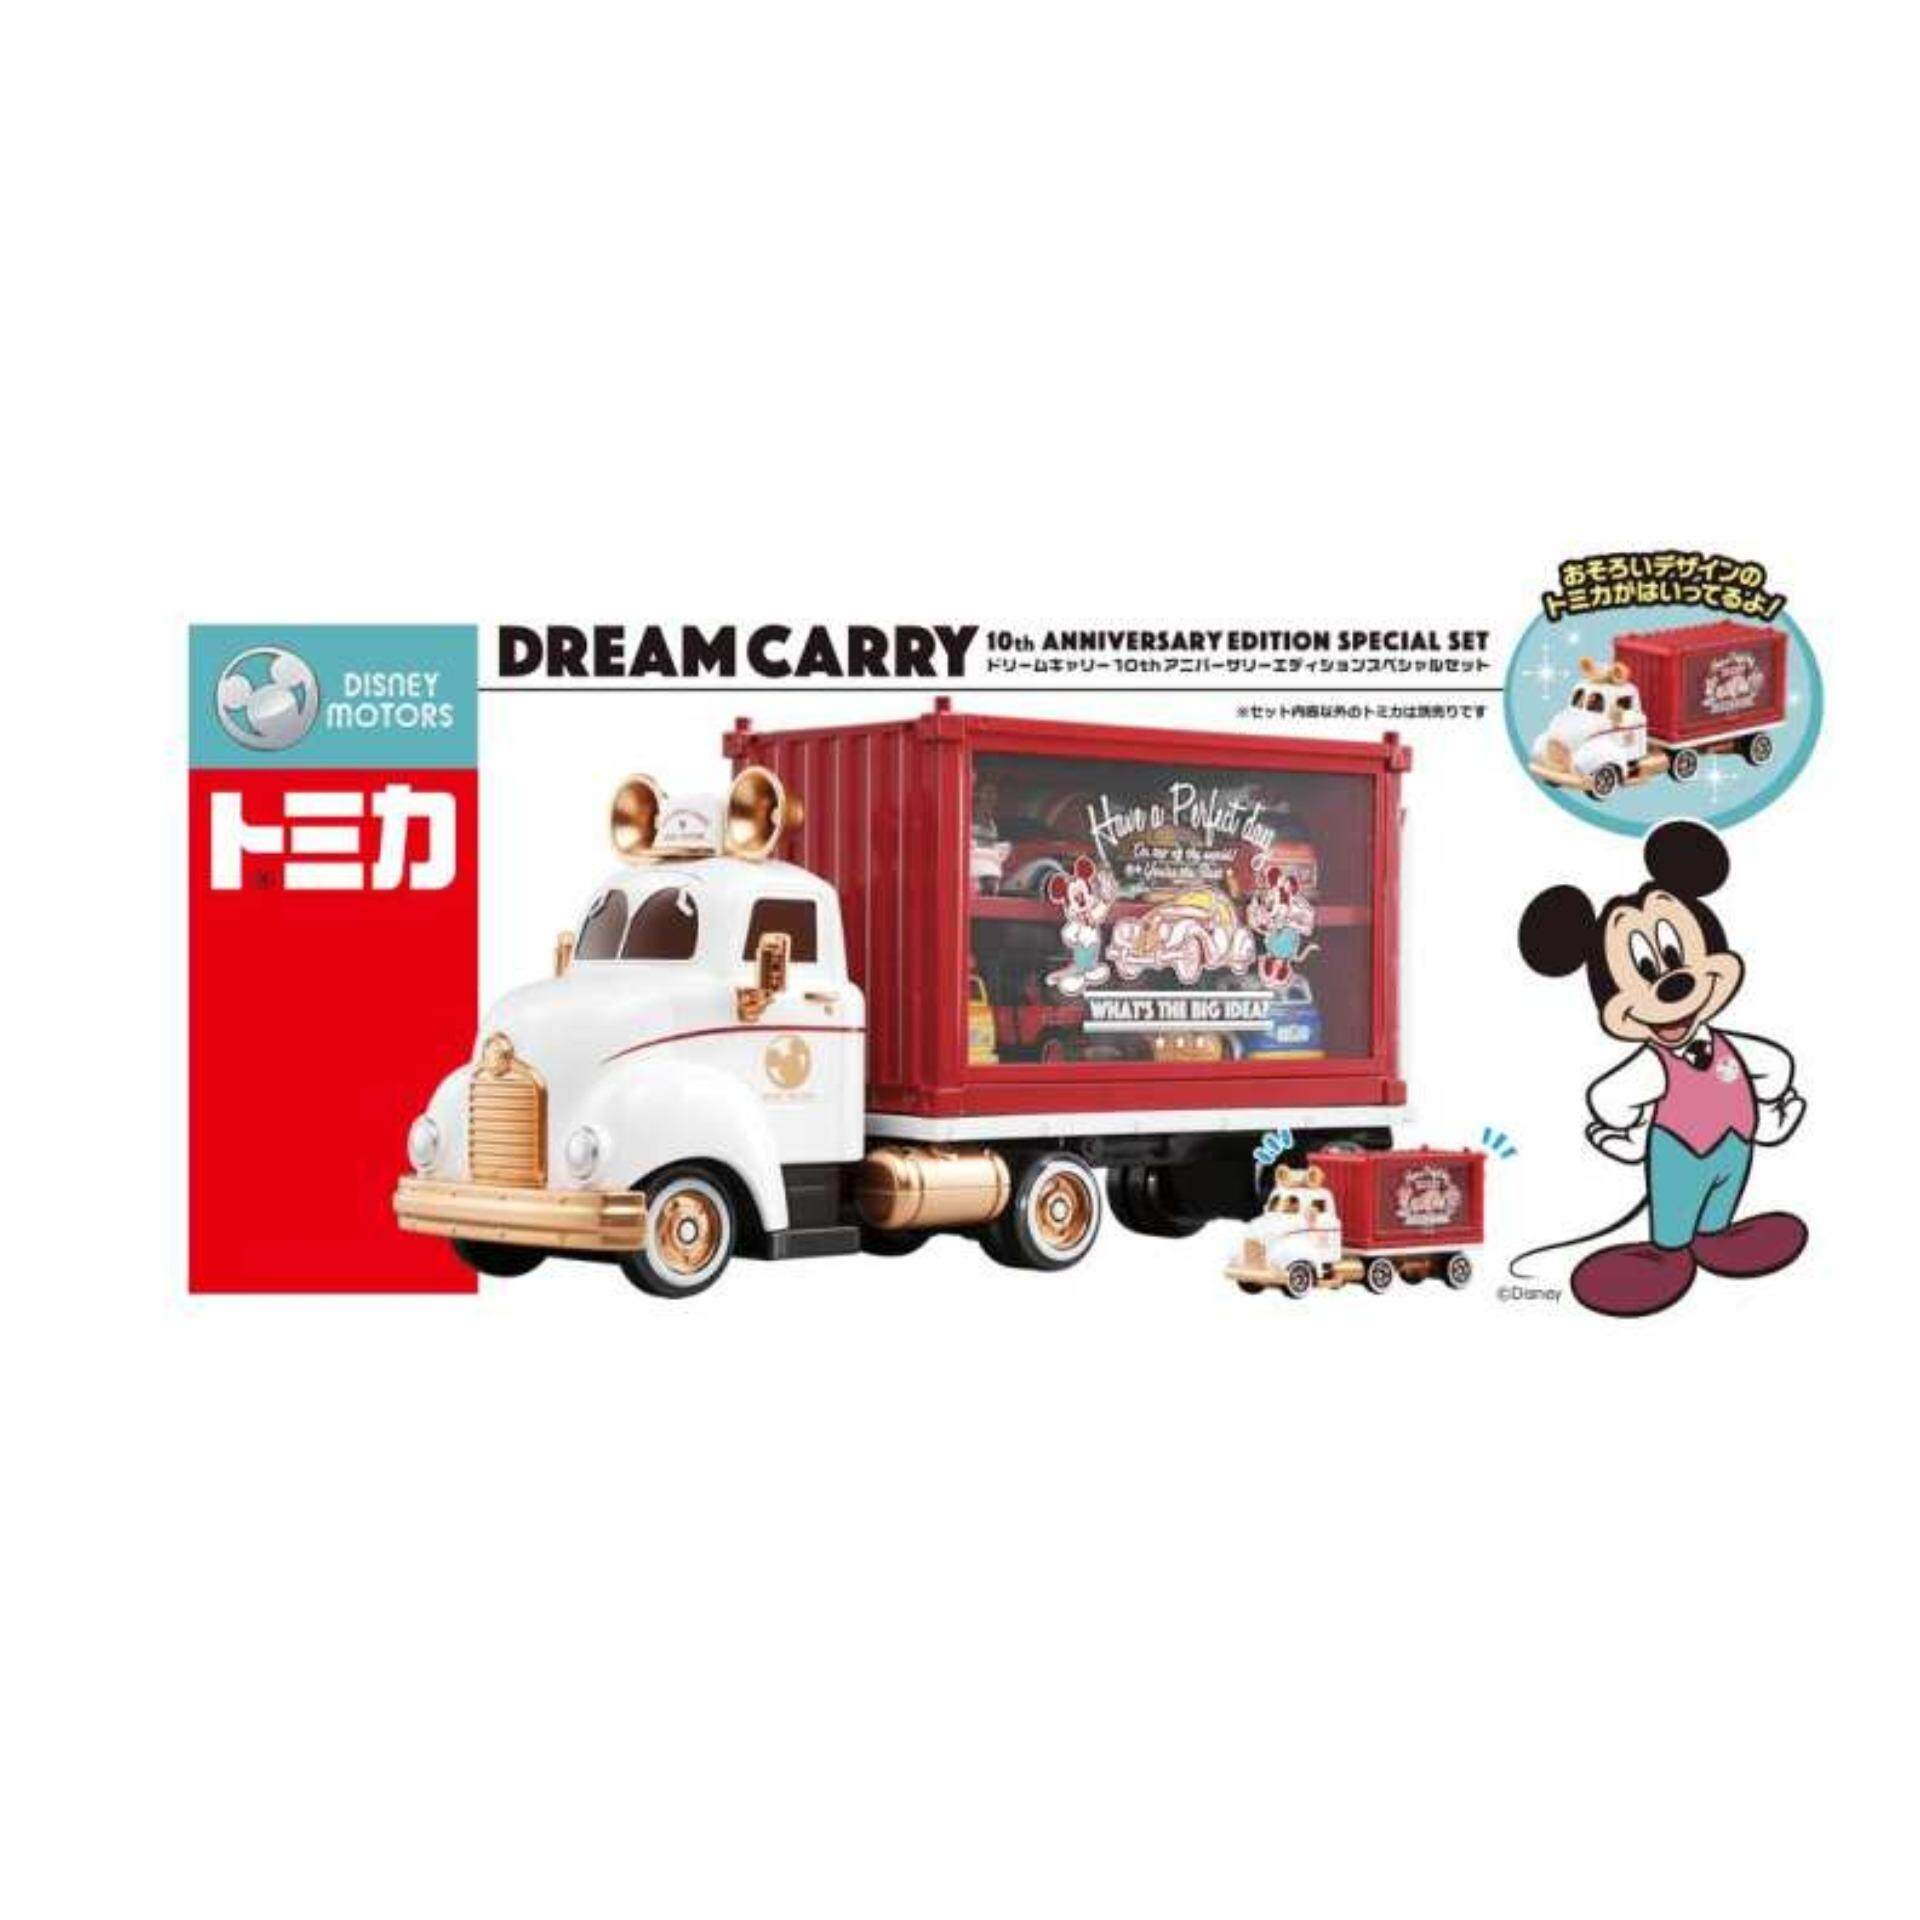 Takara Tomy Disney Motors Dream Carry Mickey Tomica Truck - 10th Anniversary Special Set Toys for boys